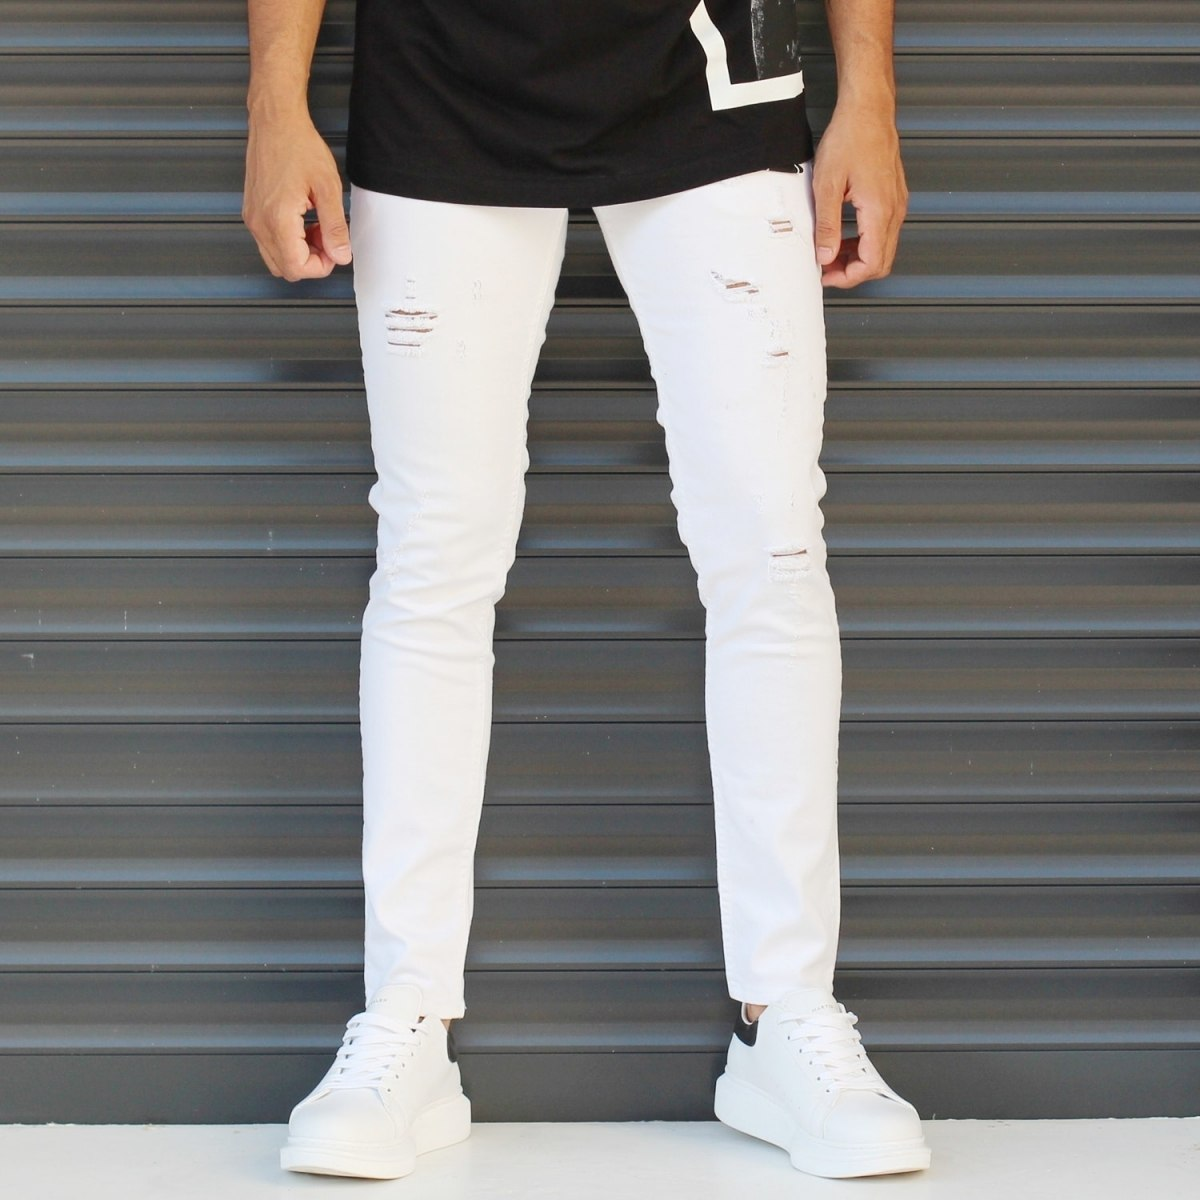 Men's Skinny Jeans With Thin Rips In White Mv Premium Brand - 1